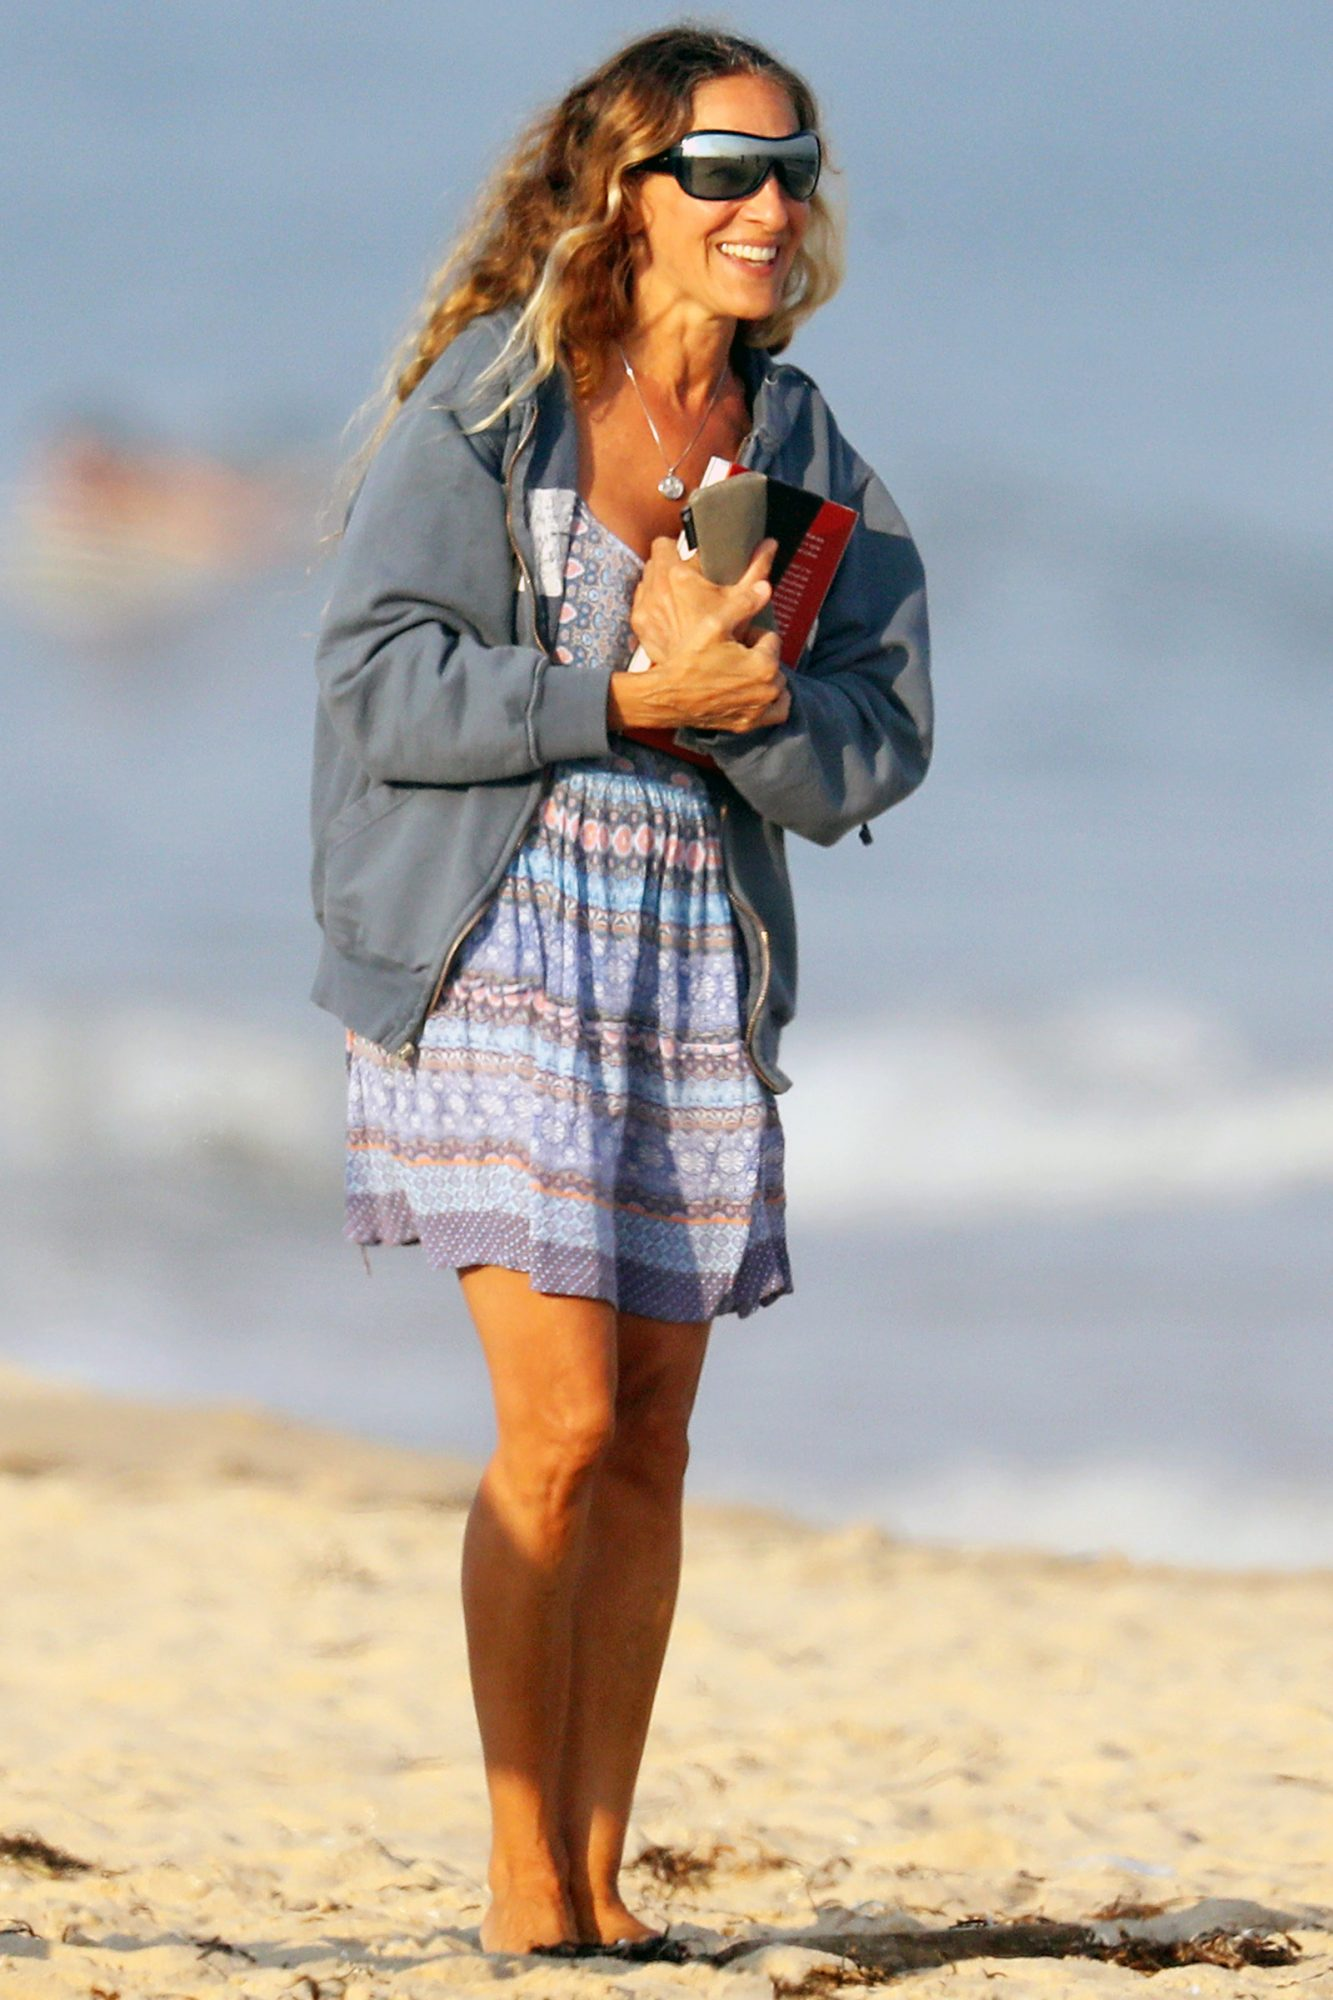 Sarah Jessica Parker Heads To The Beach With Friends in The Hamptons.